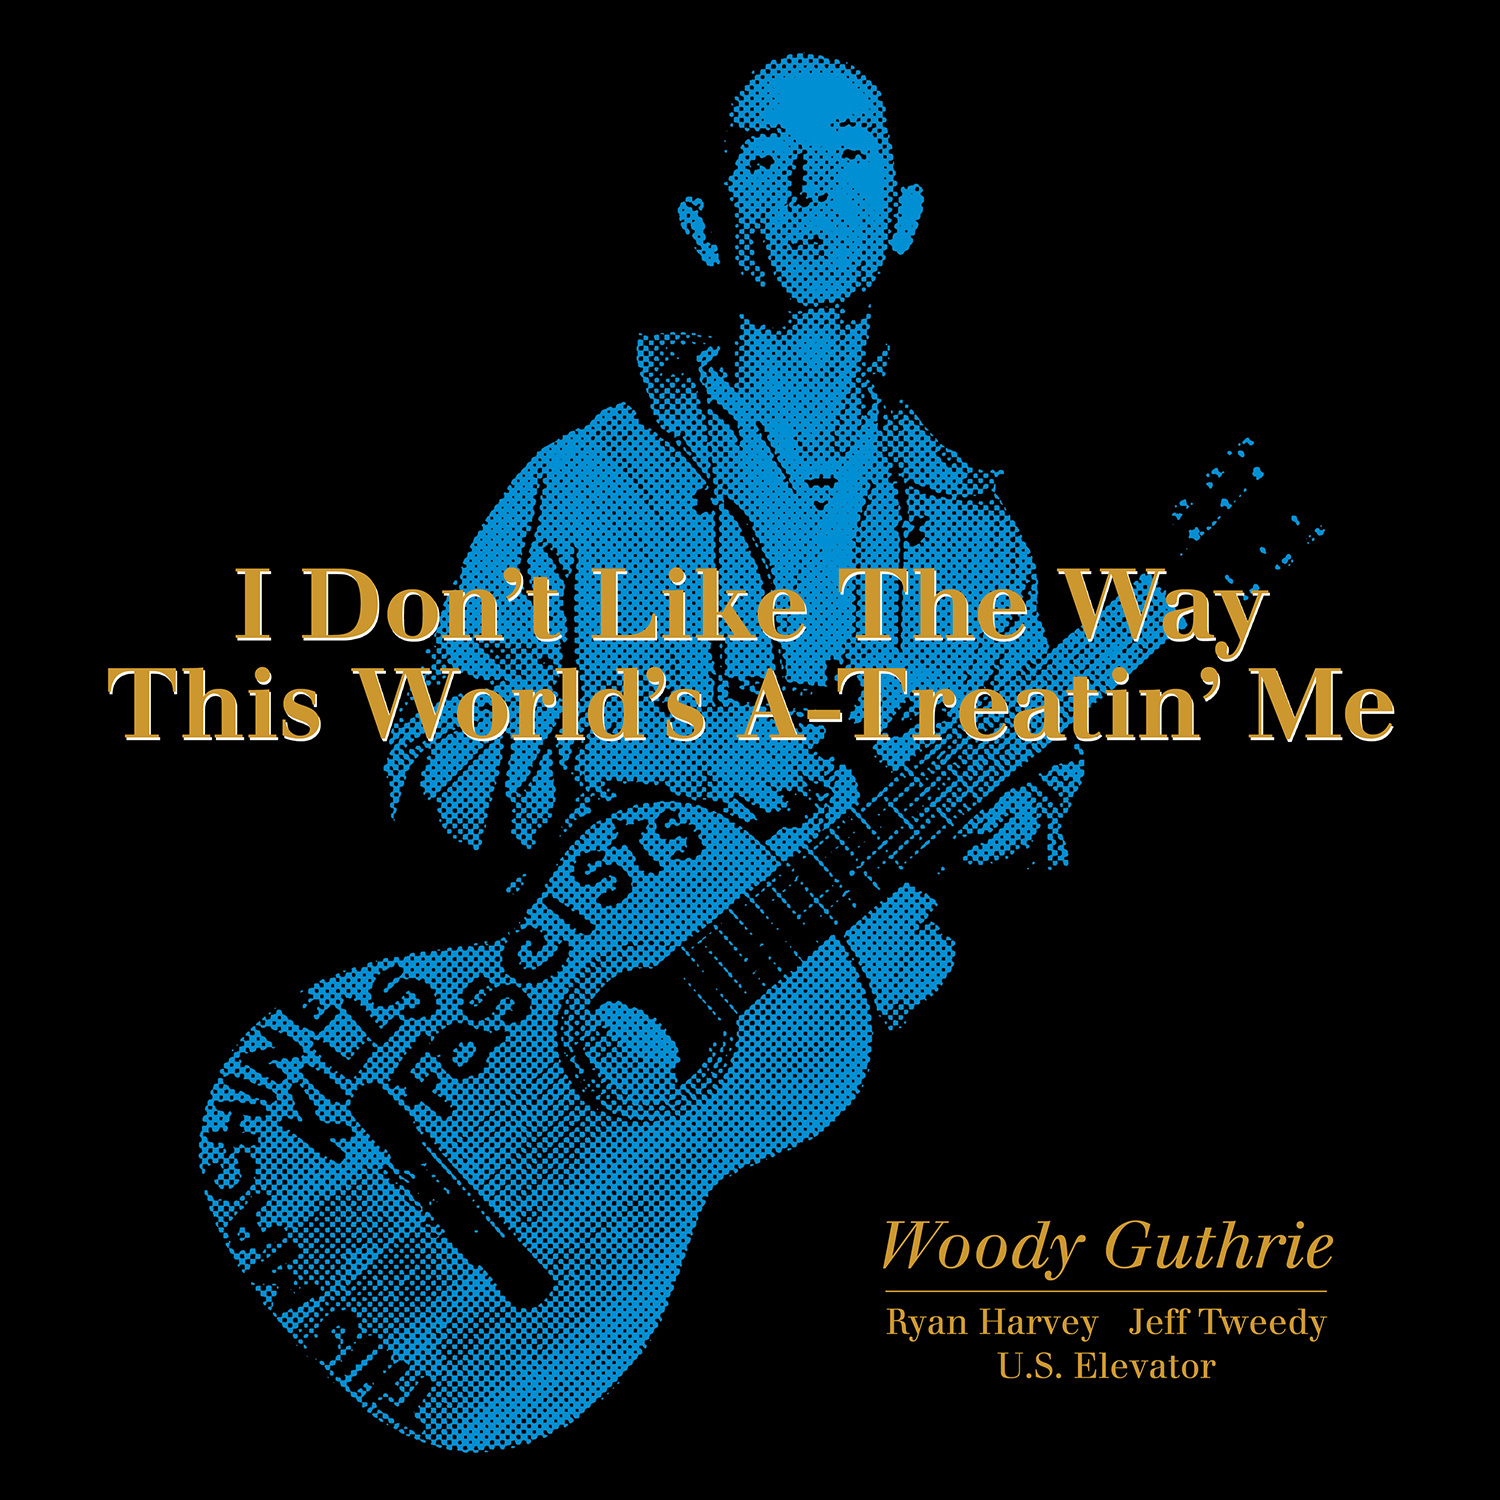 Jeff Tweedy Accompanies Woody Guthrie on a New Rendition of  I Don t Like The Way This World s A-Treatin  Me  (premiere)